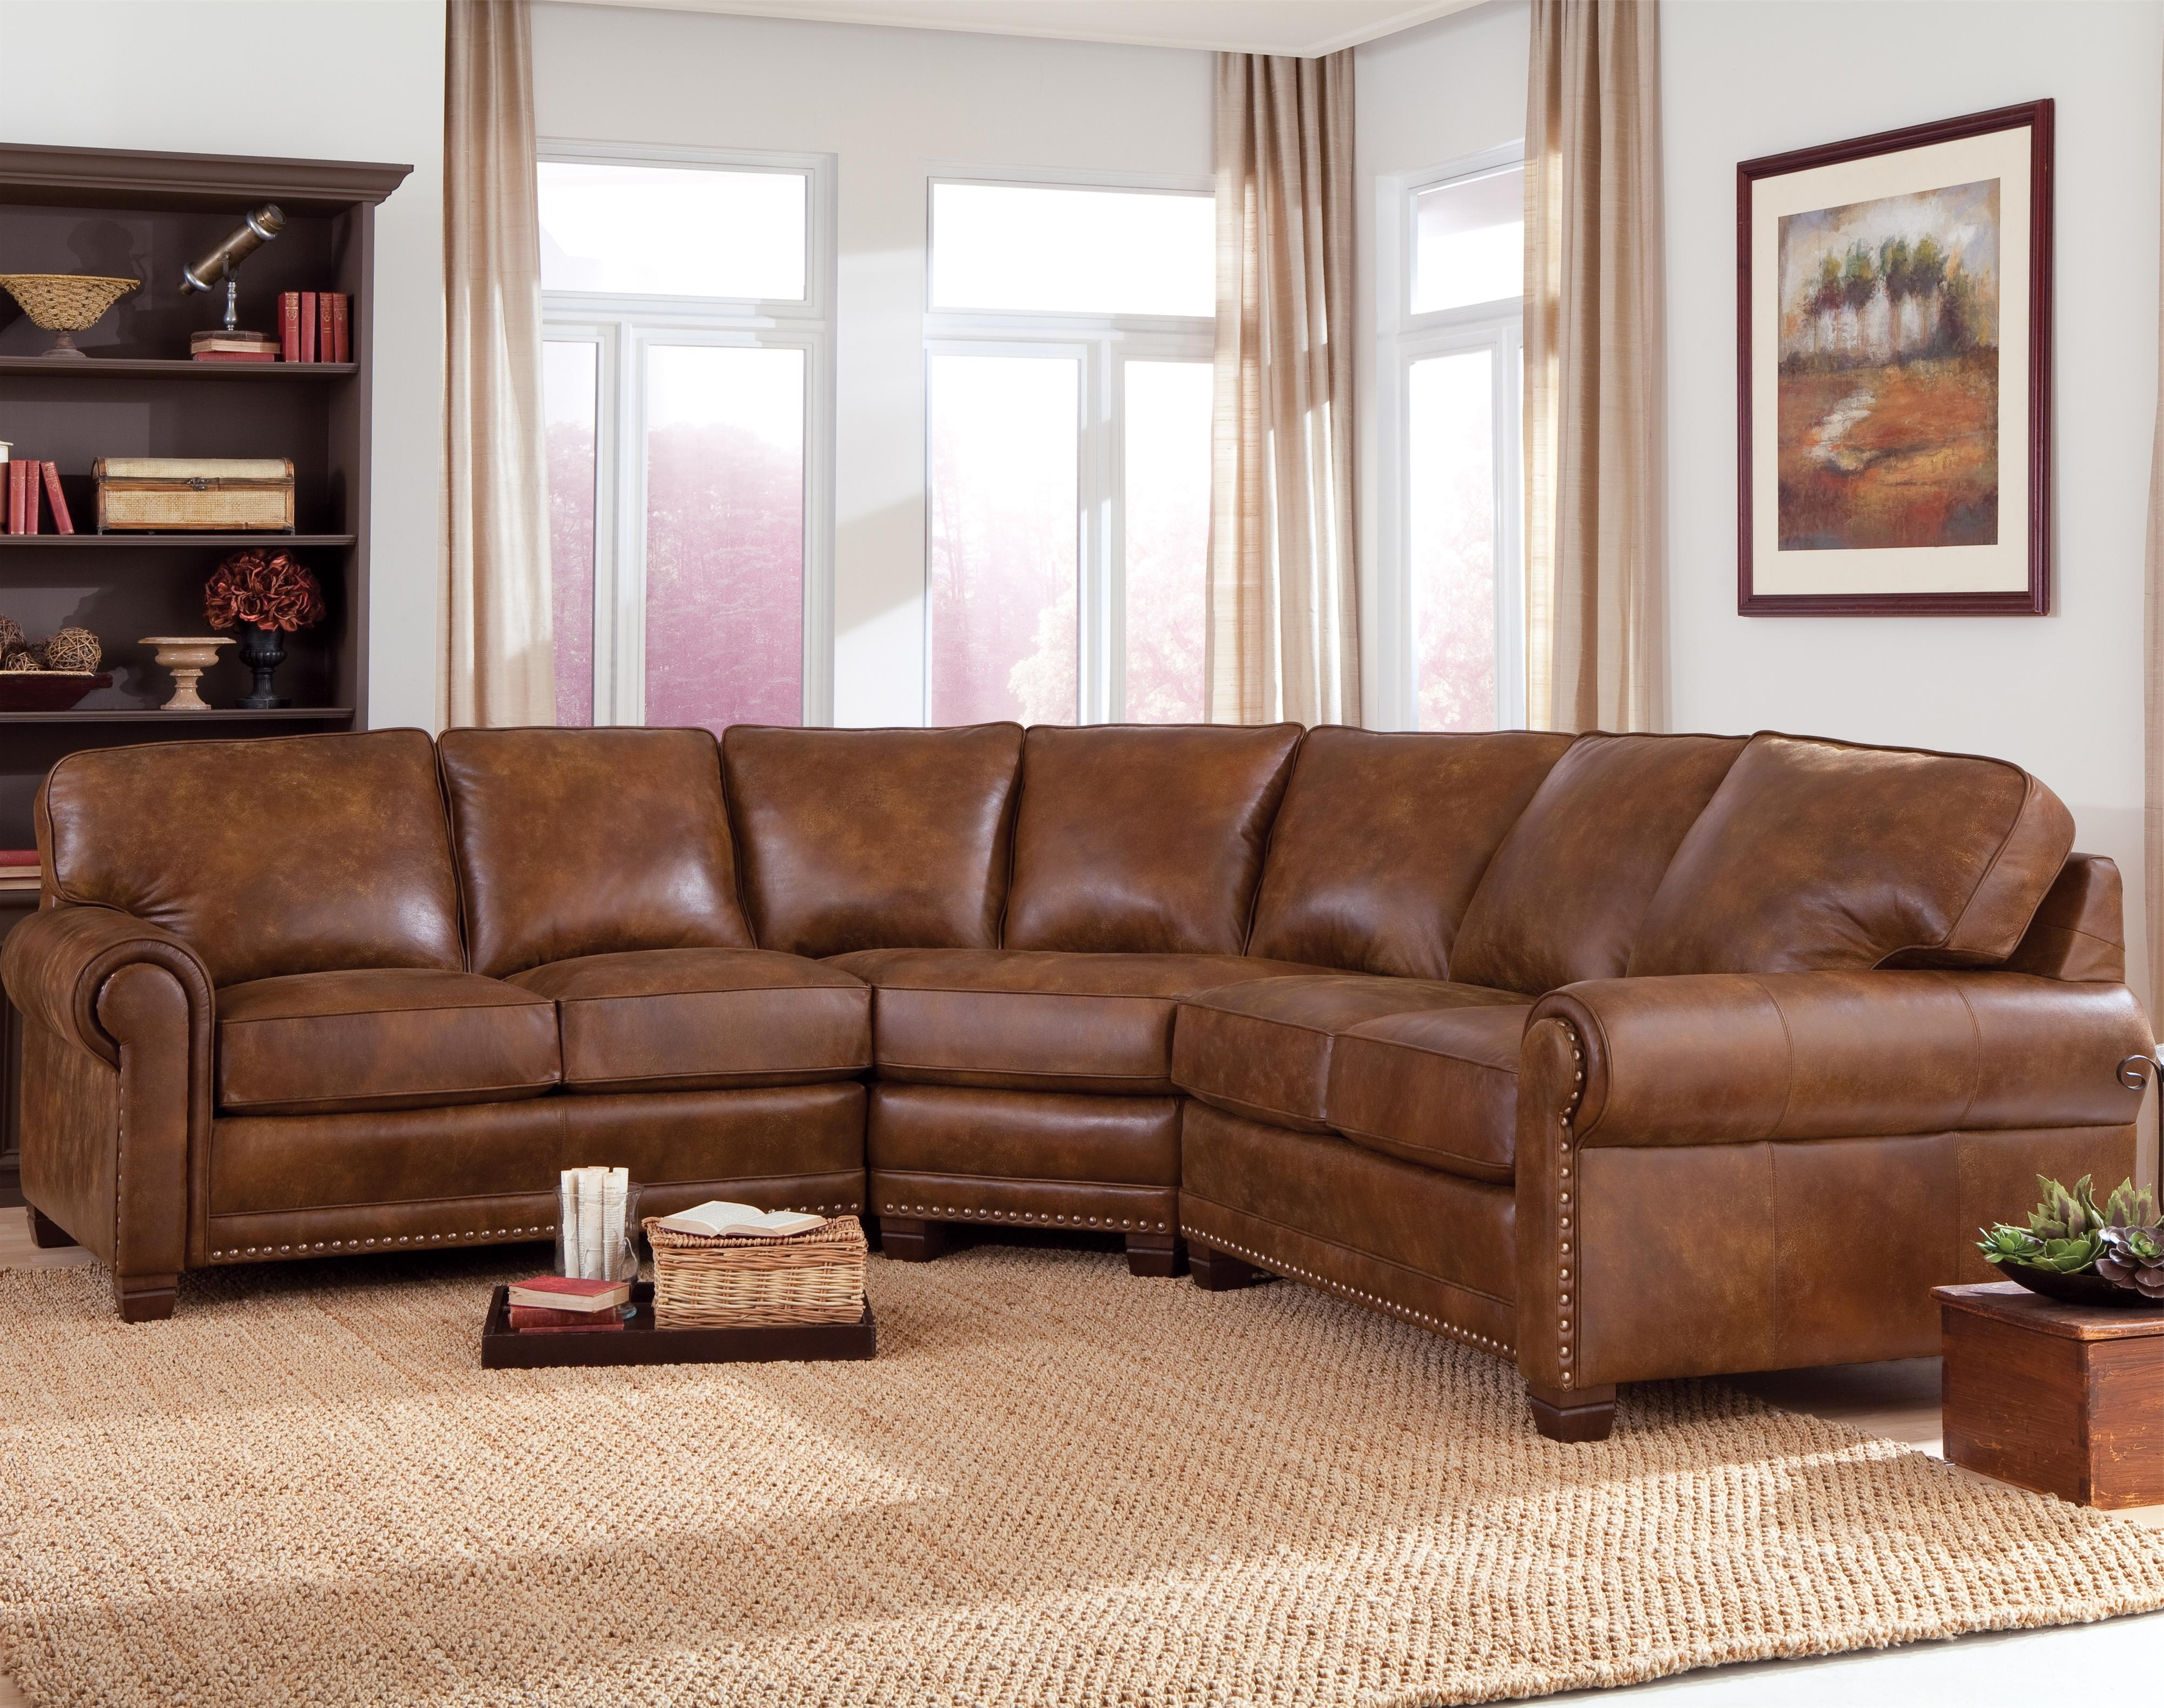 Favorite Traditional 3 Piece Sectional Sofa With Nailhead Trimsmith With Sectional Sofas With Nailheads (View 11 of 15)